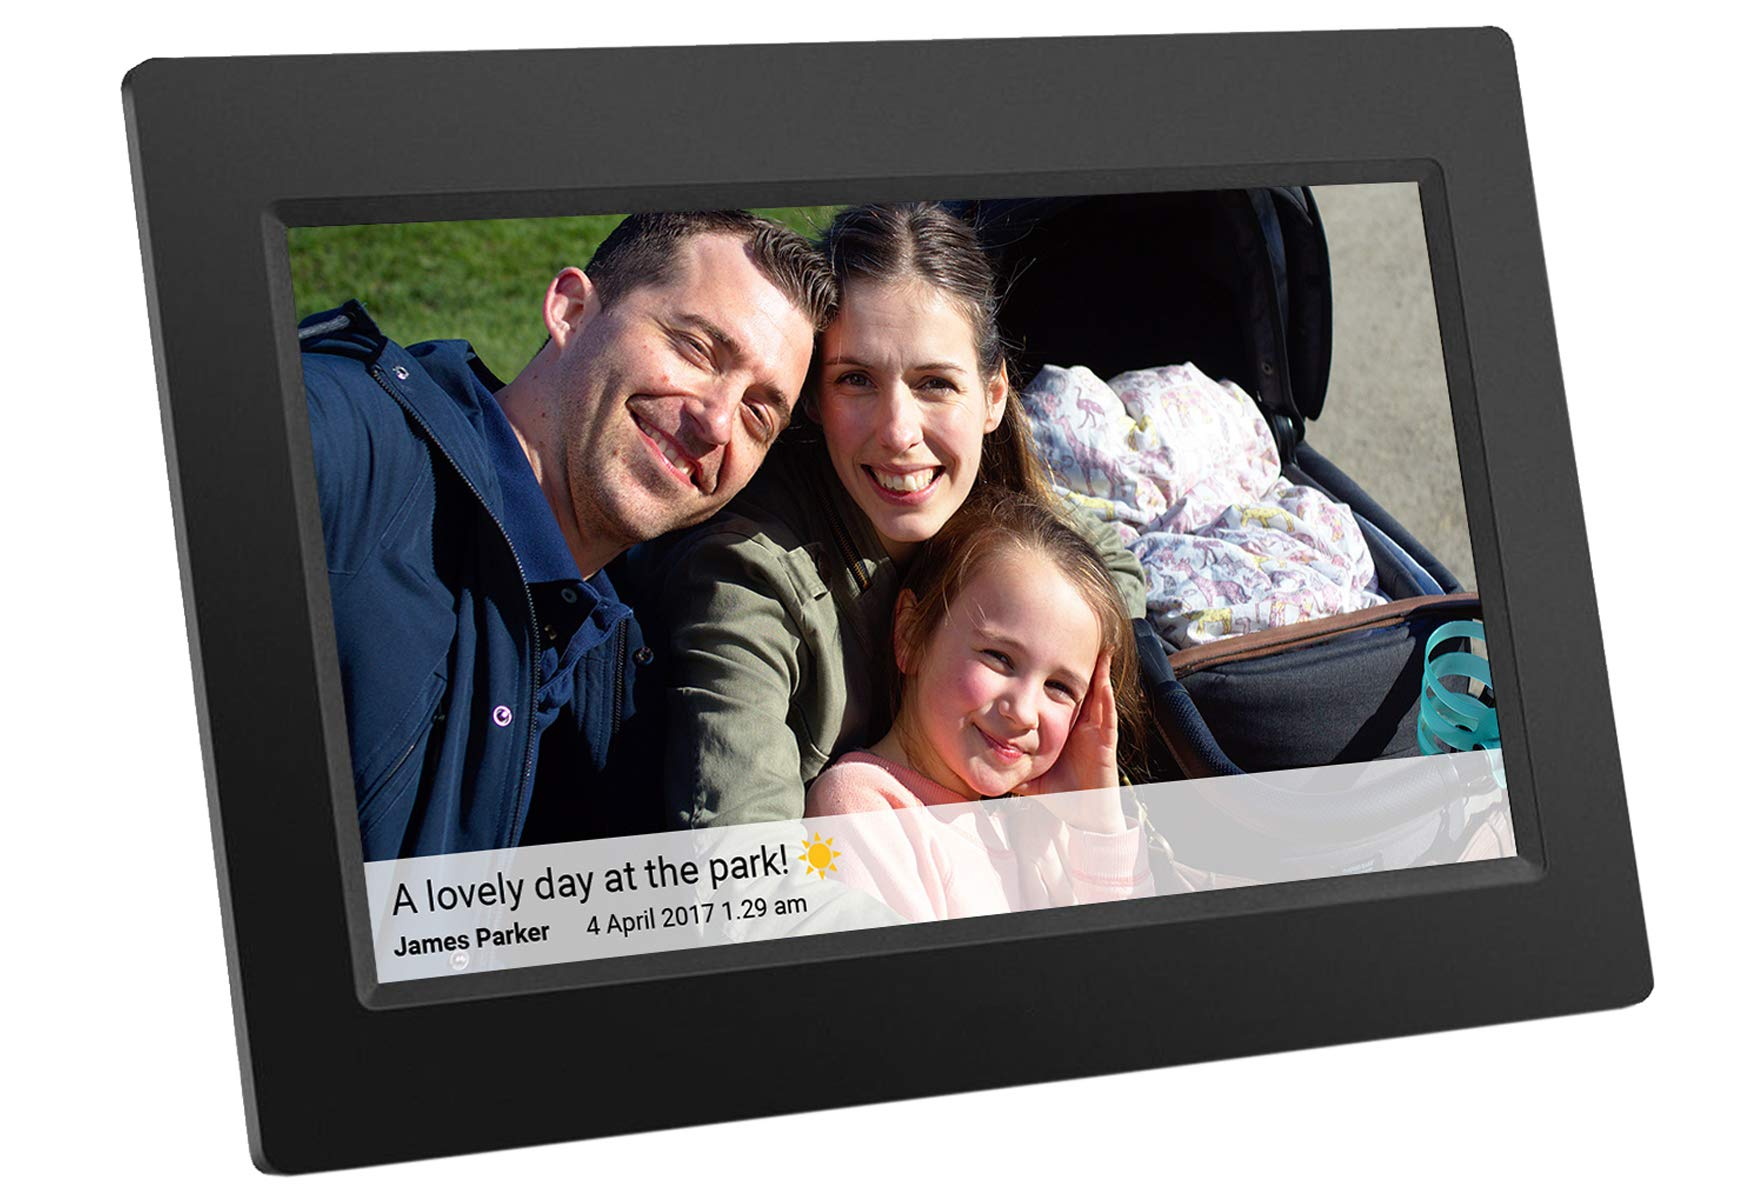 Feelcare 10 Inch 16GB Smart WiFi Digital Picture Frame with Touch Screen, 800x1280 IPS LCD Panel, Wall-Mountable, Portrait Landscape, Instantly Sharing Moments Anytime Anywhere(Black)